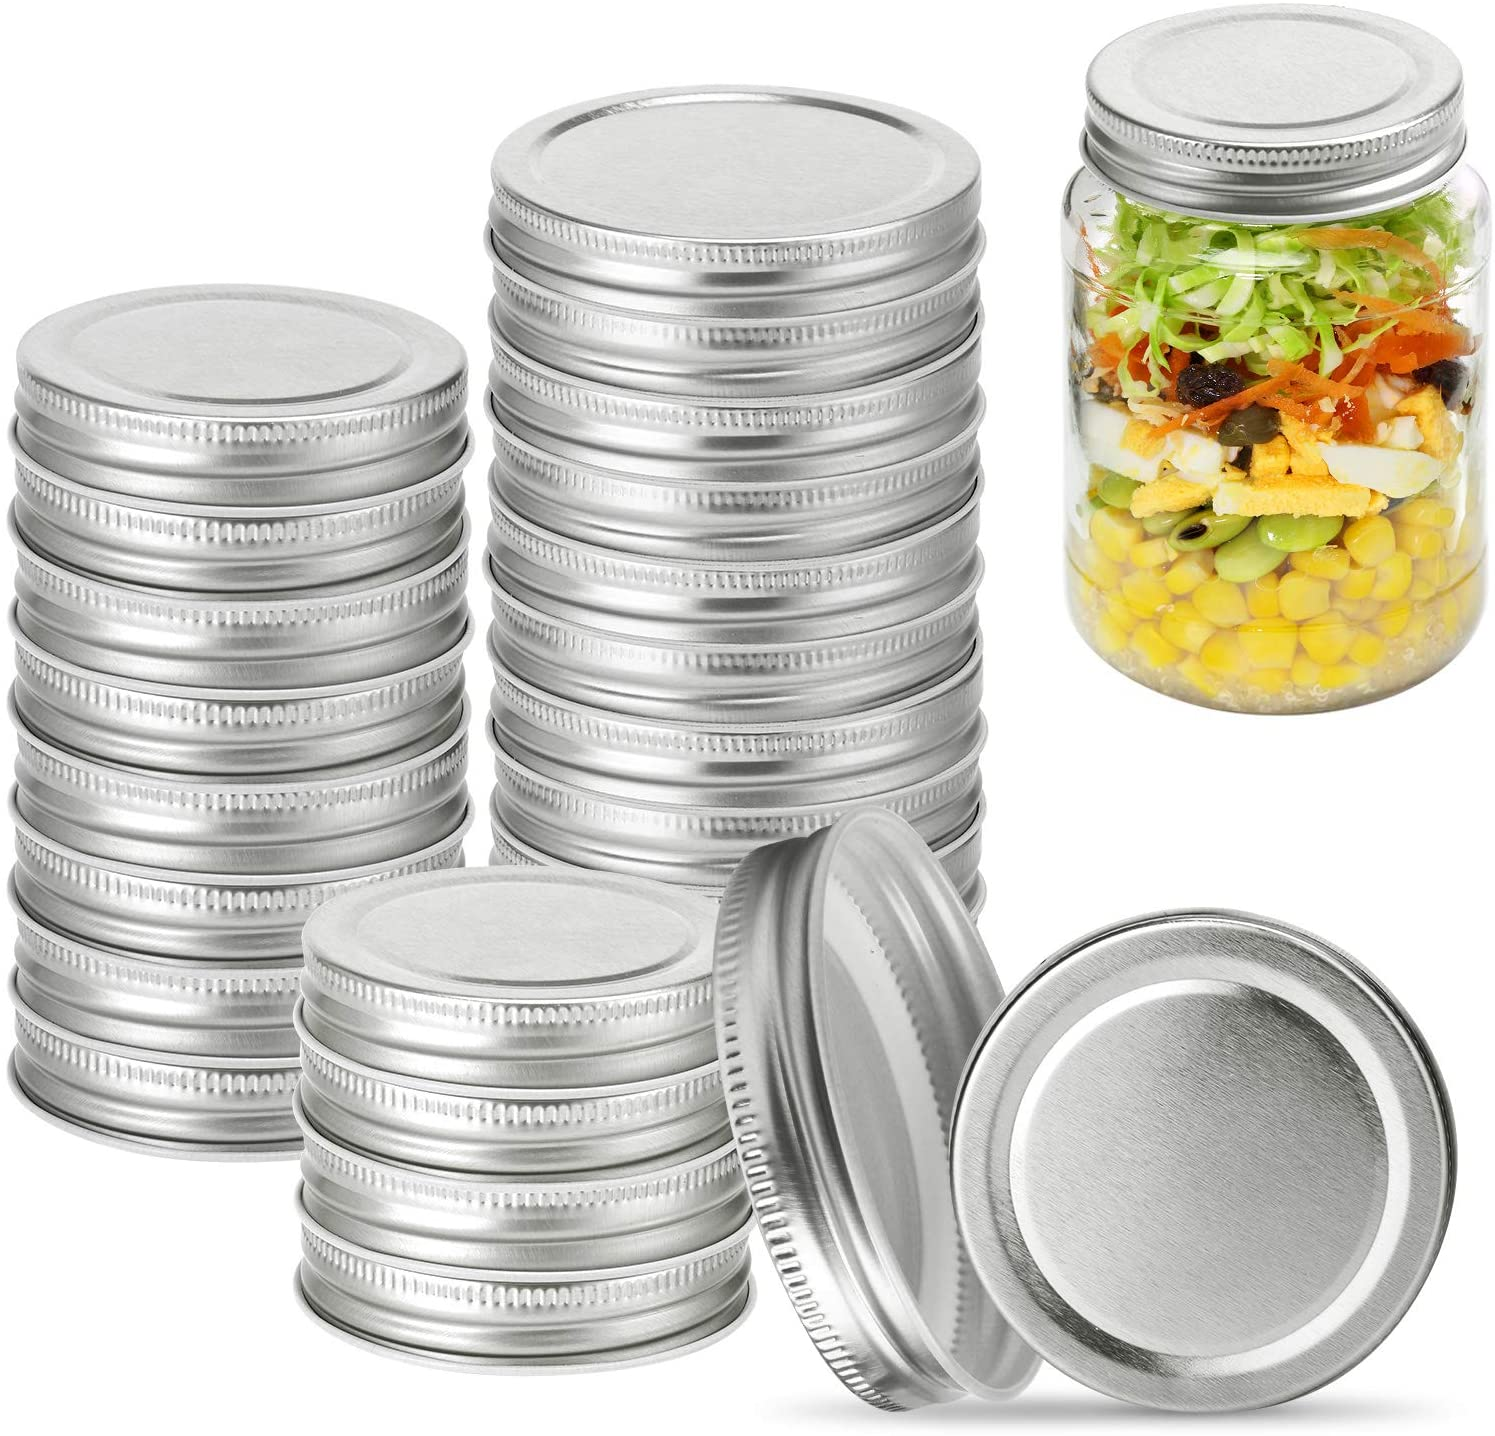 Mason Jar Lids 24 Pack,12 Wide Mouth & 12 Regular Spout Can Lids, Leak-Proof and Tightness Safety Mason Storage Solid Lid. Silver Canning Jar Lids